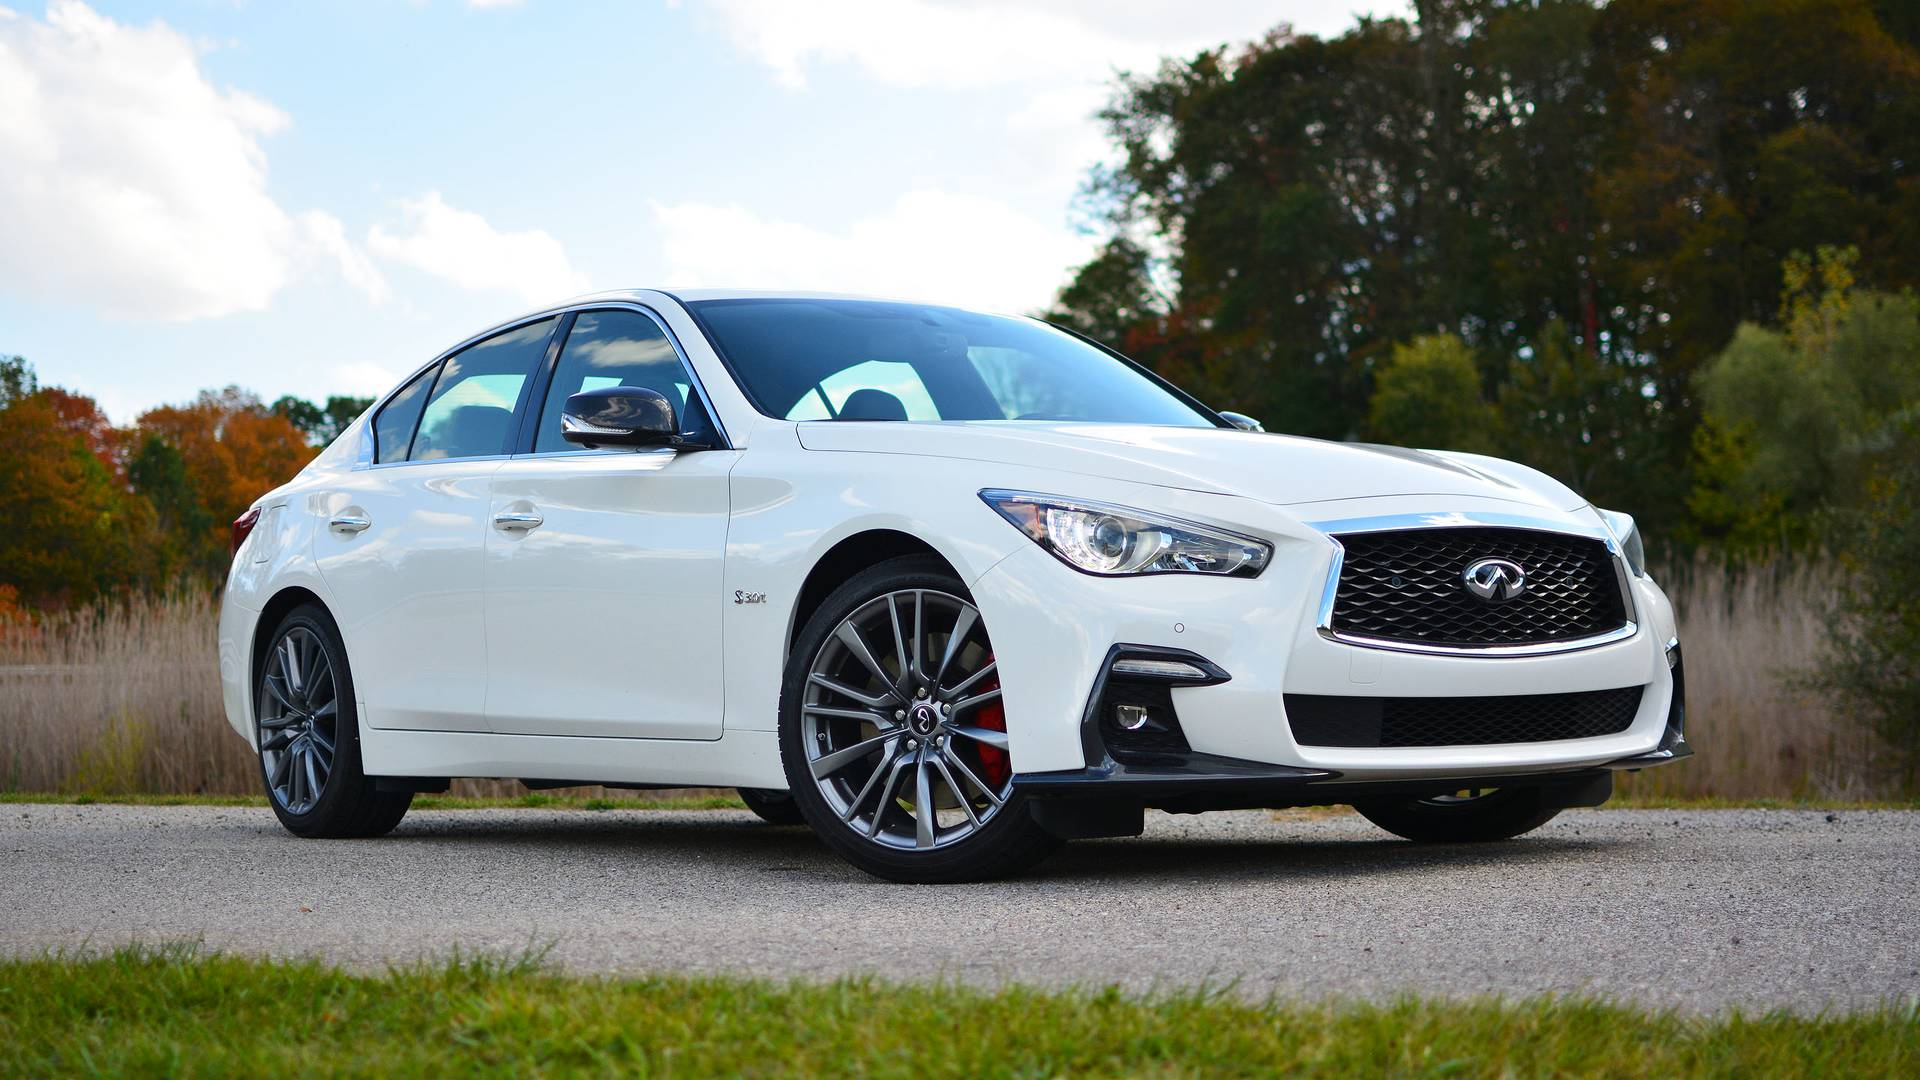 2018 infiniti q50 red sport 400 review tragically flawed rh motor1 com infiniti q50 red sport 400 specs infiniti q50 red sport 400 top speed